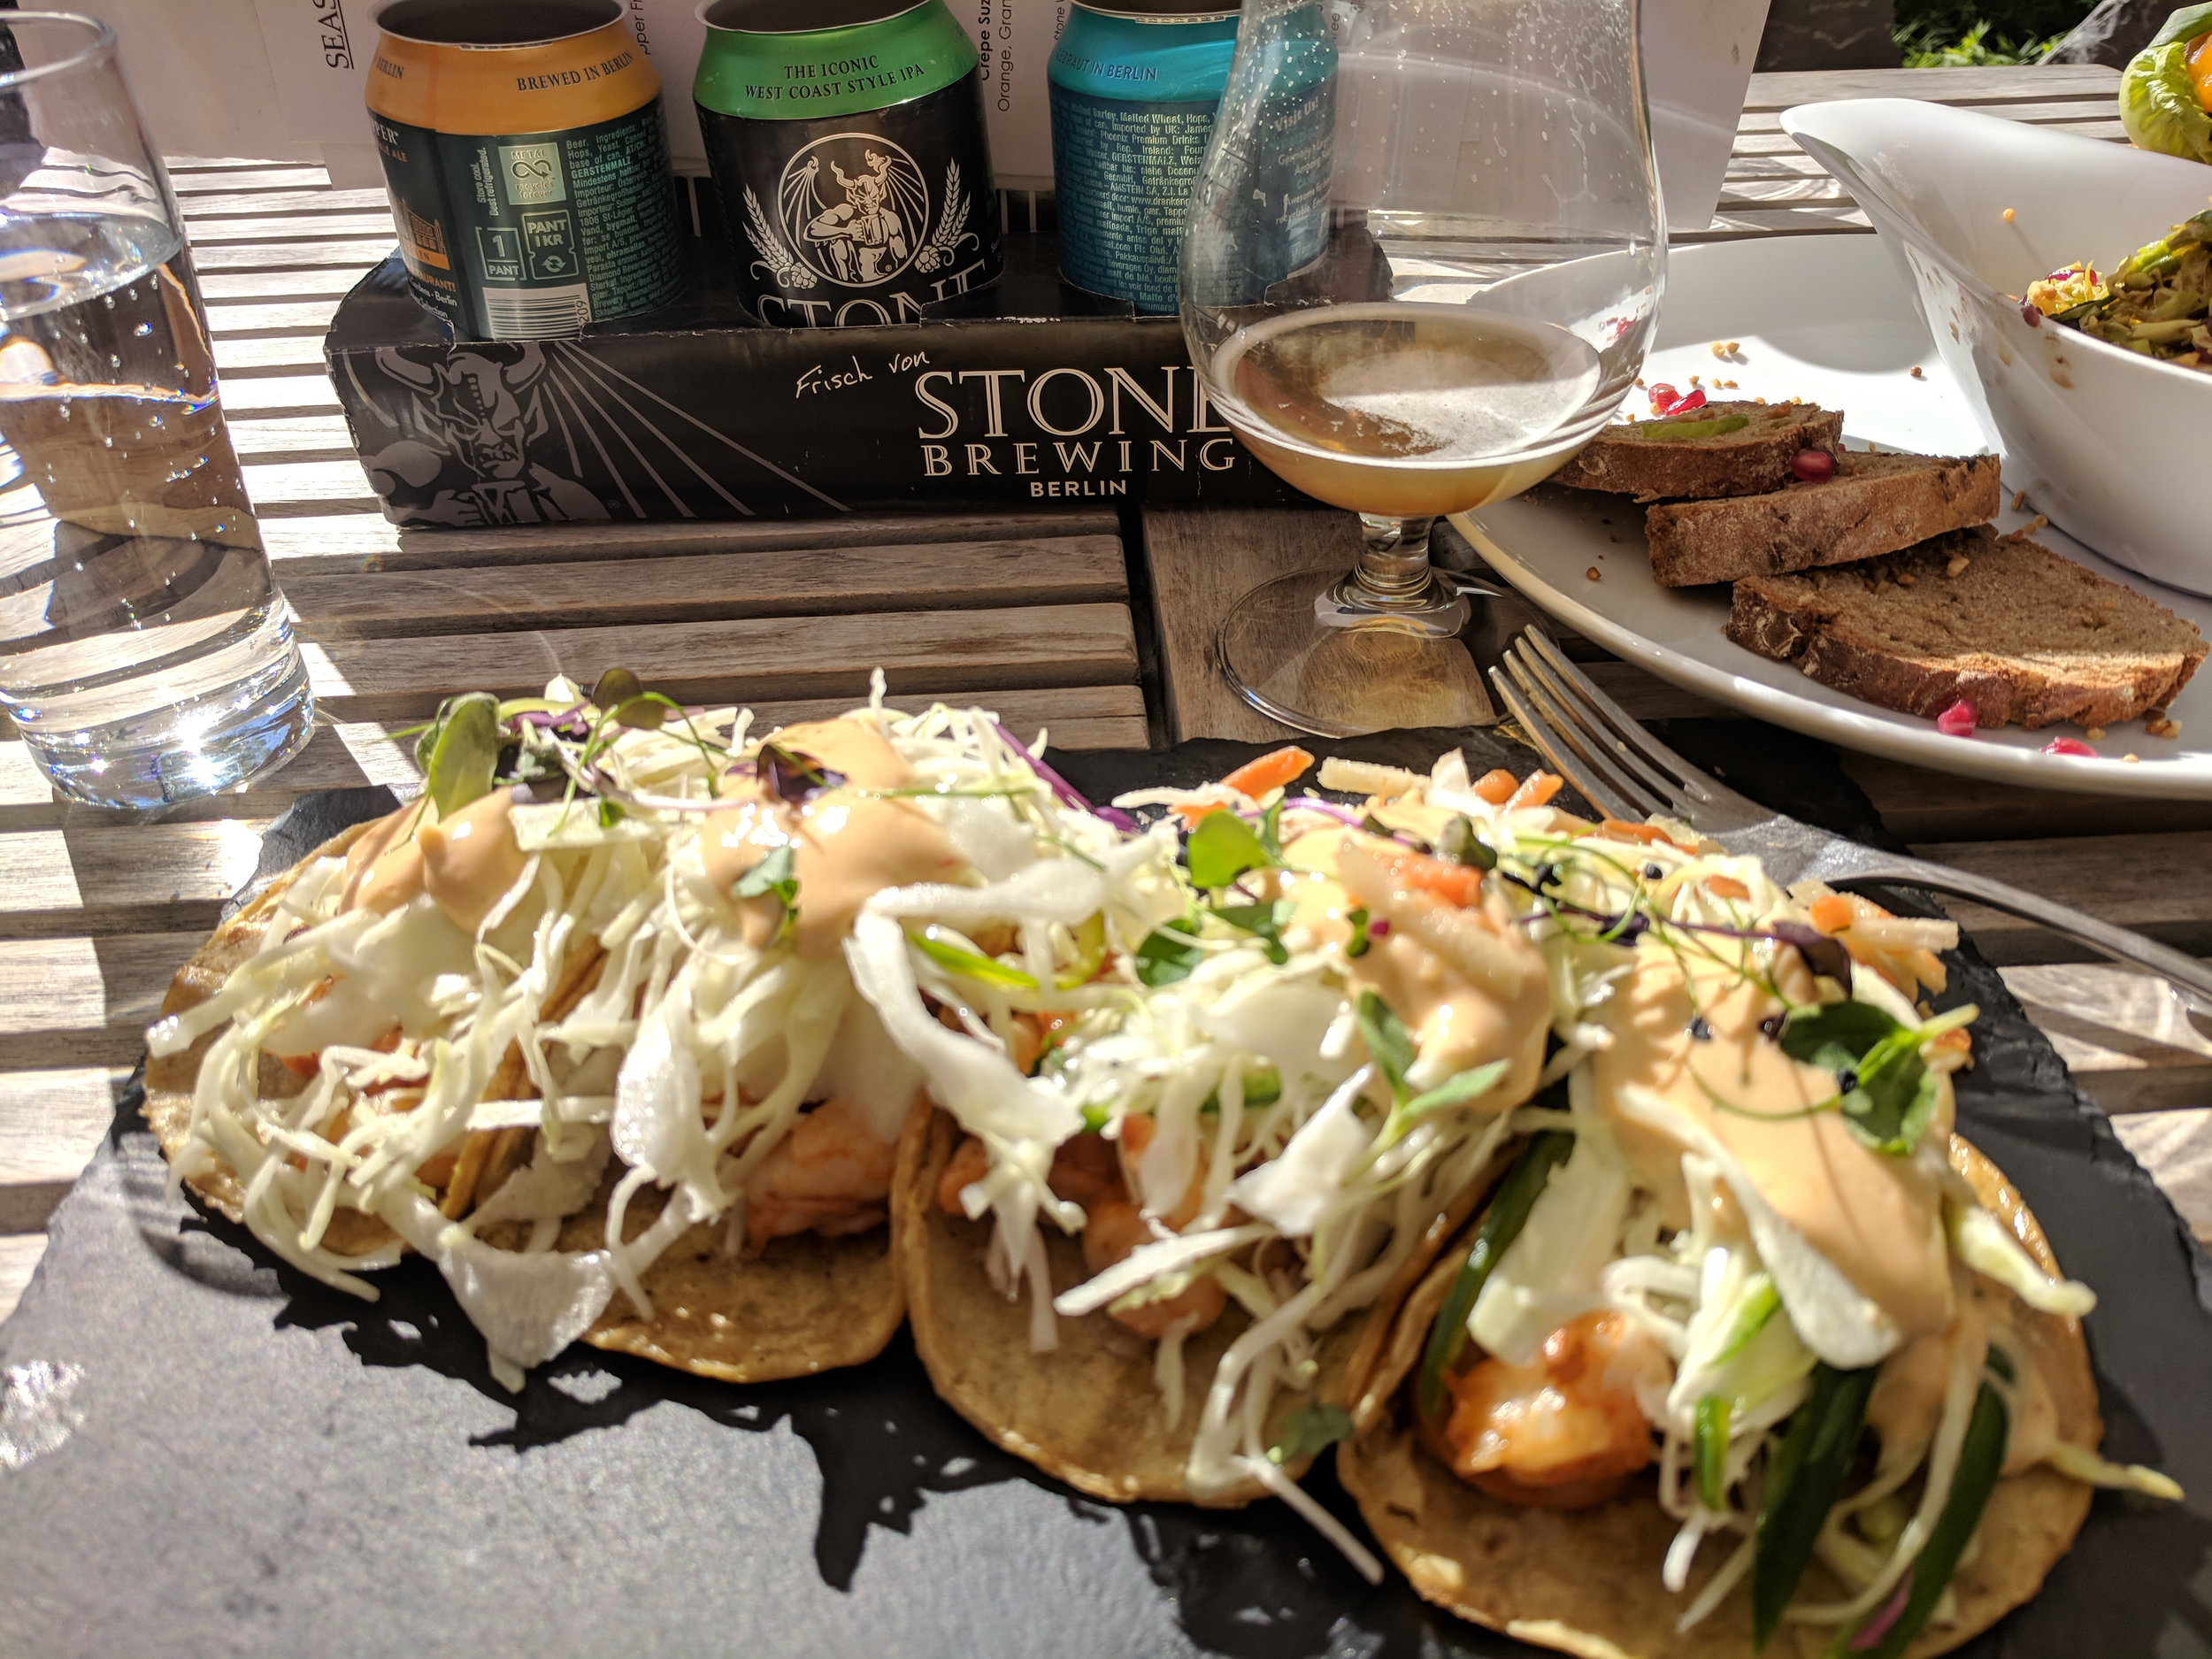 Sunshine, Fish Tacos and Stone beer- we could be in San Diego